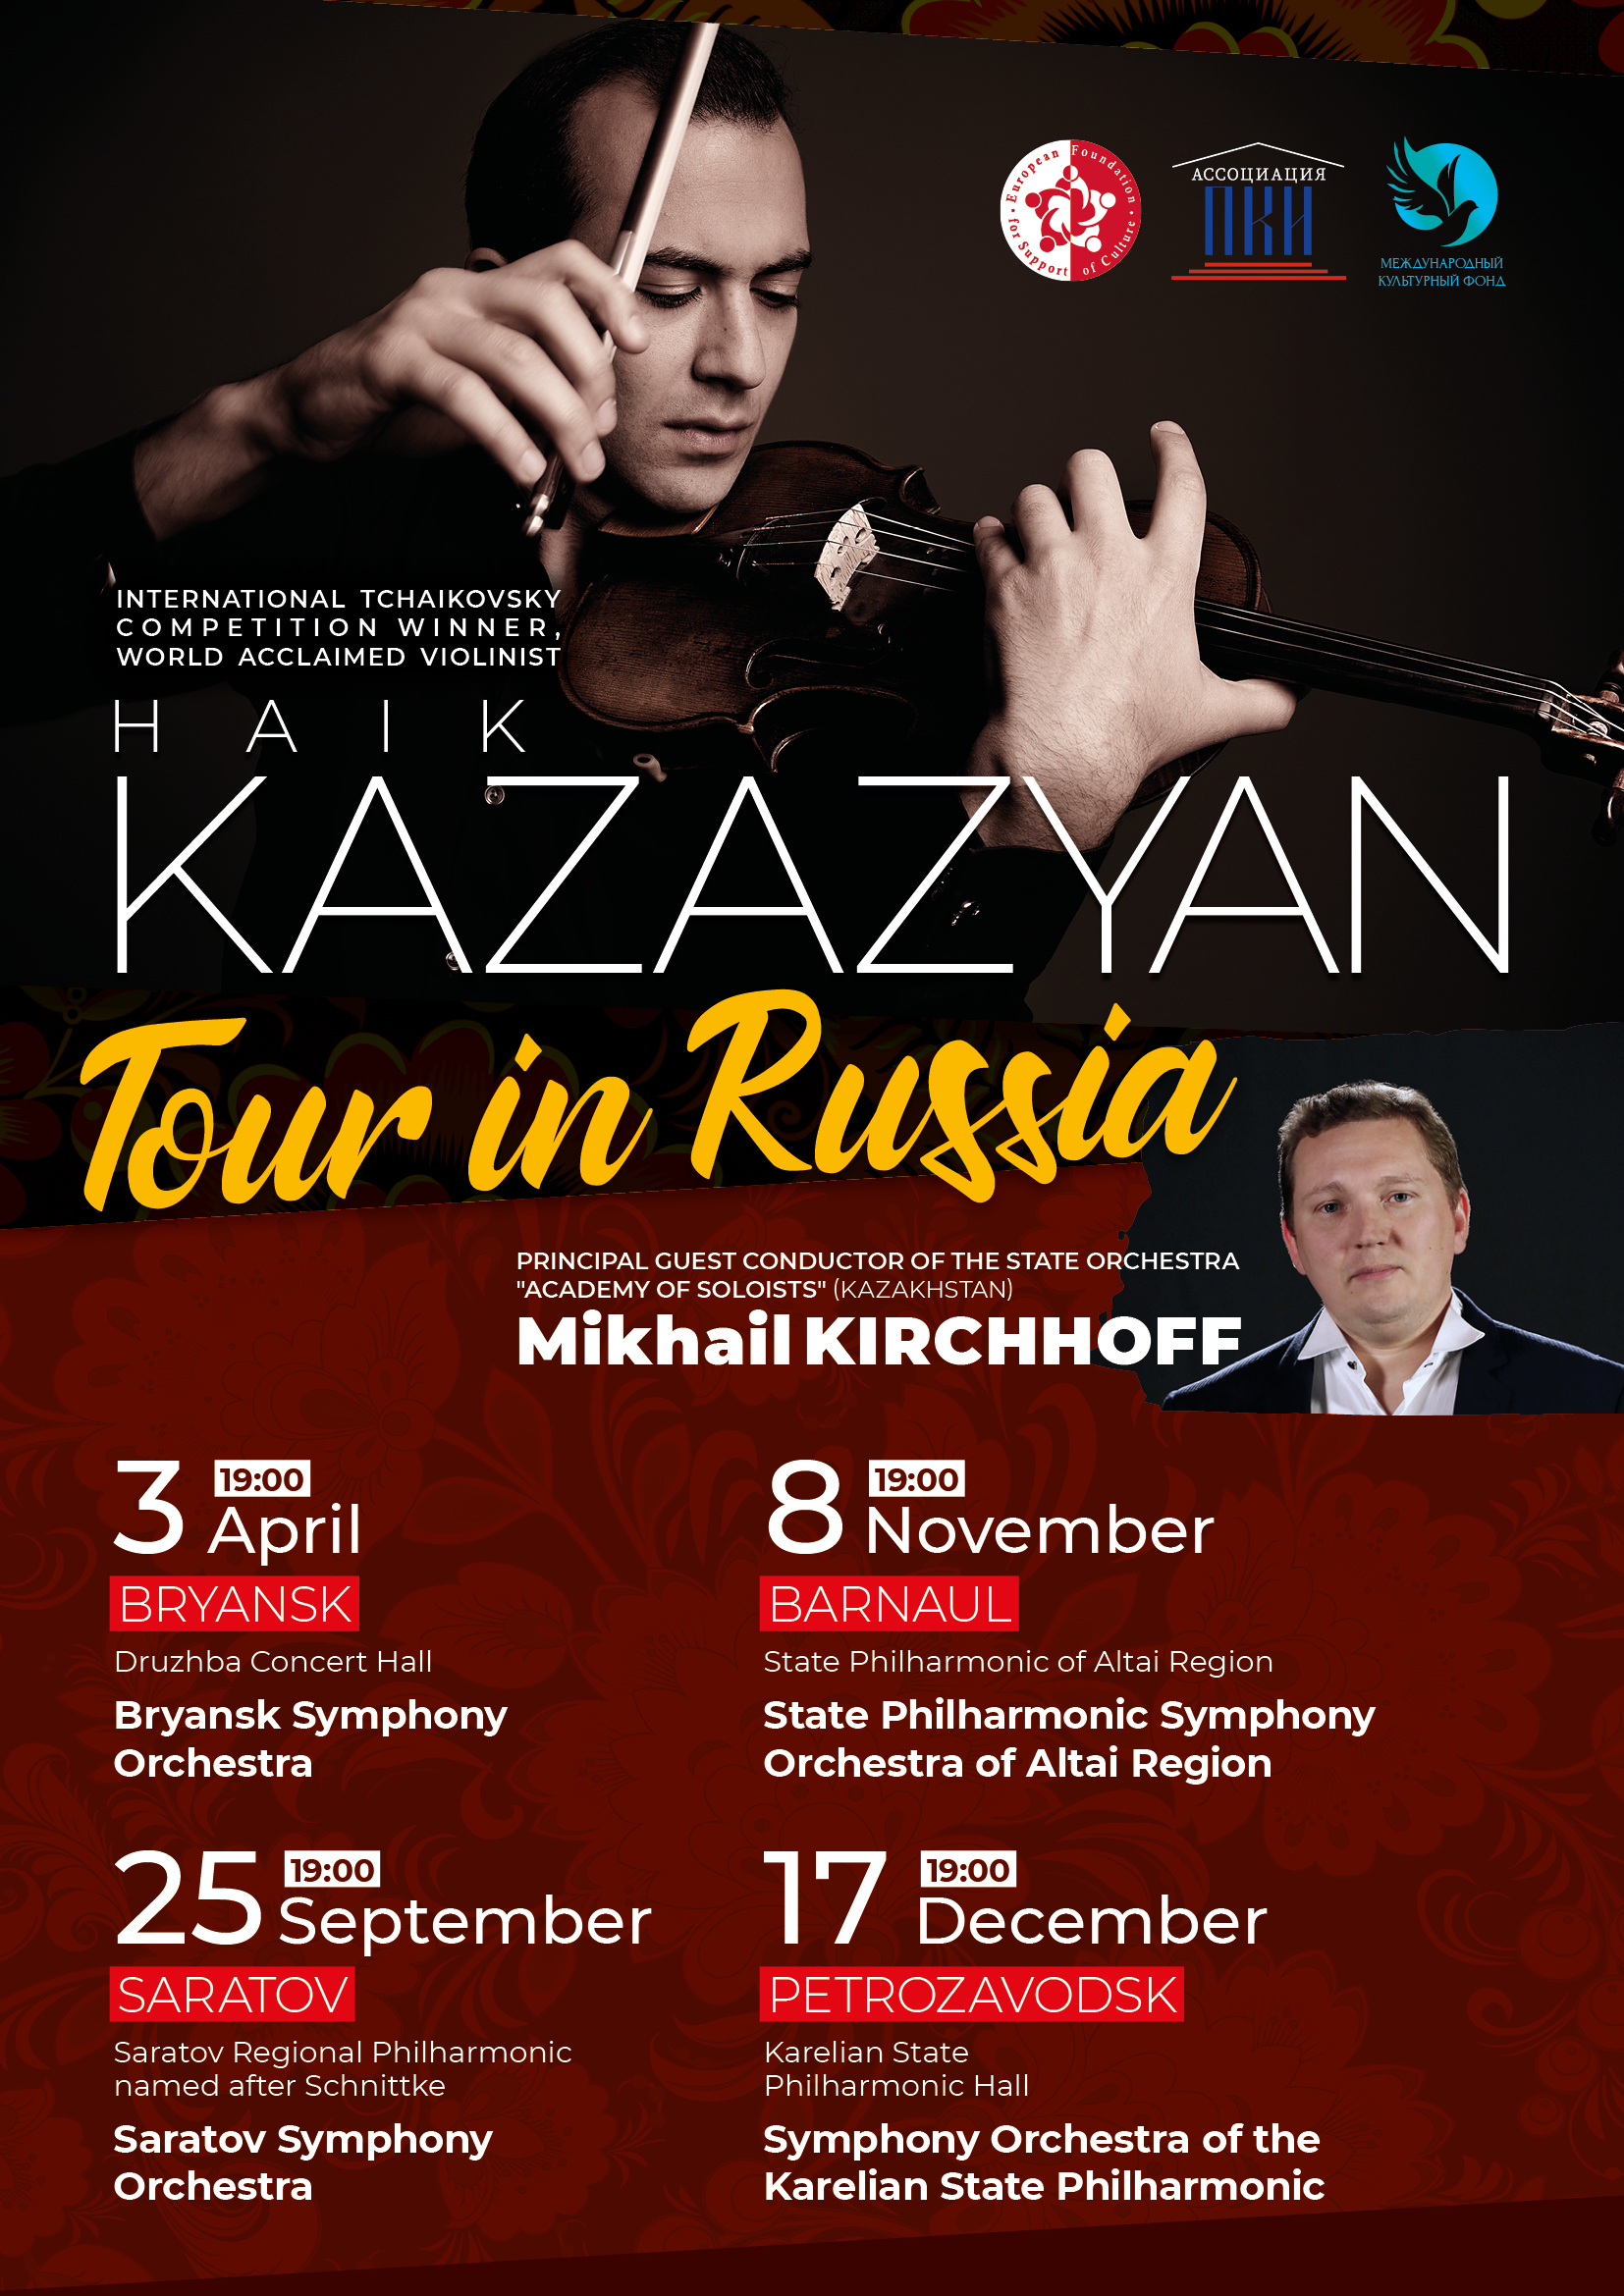 Haik+Kazazyan+Tour+in+Russian